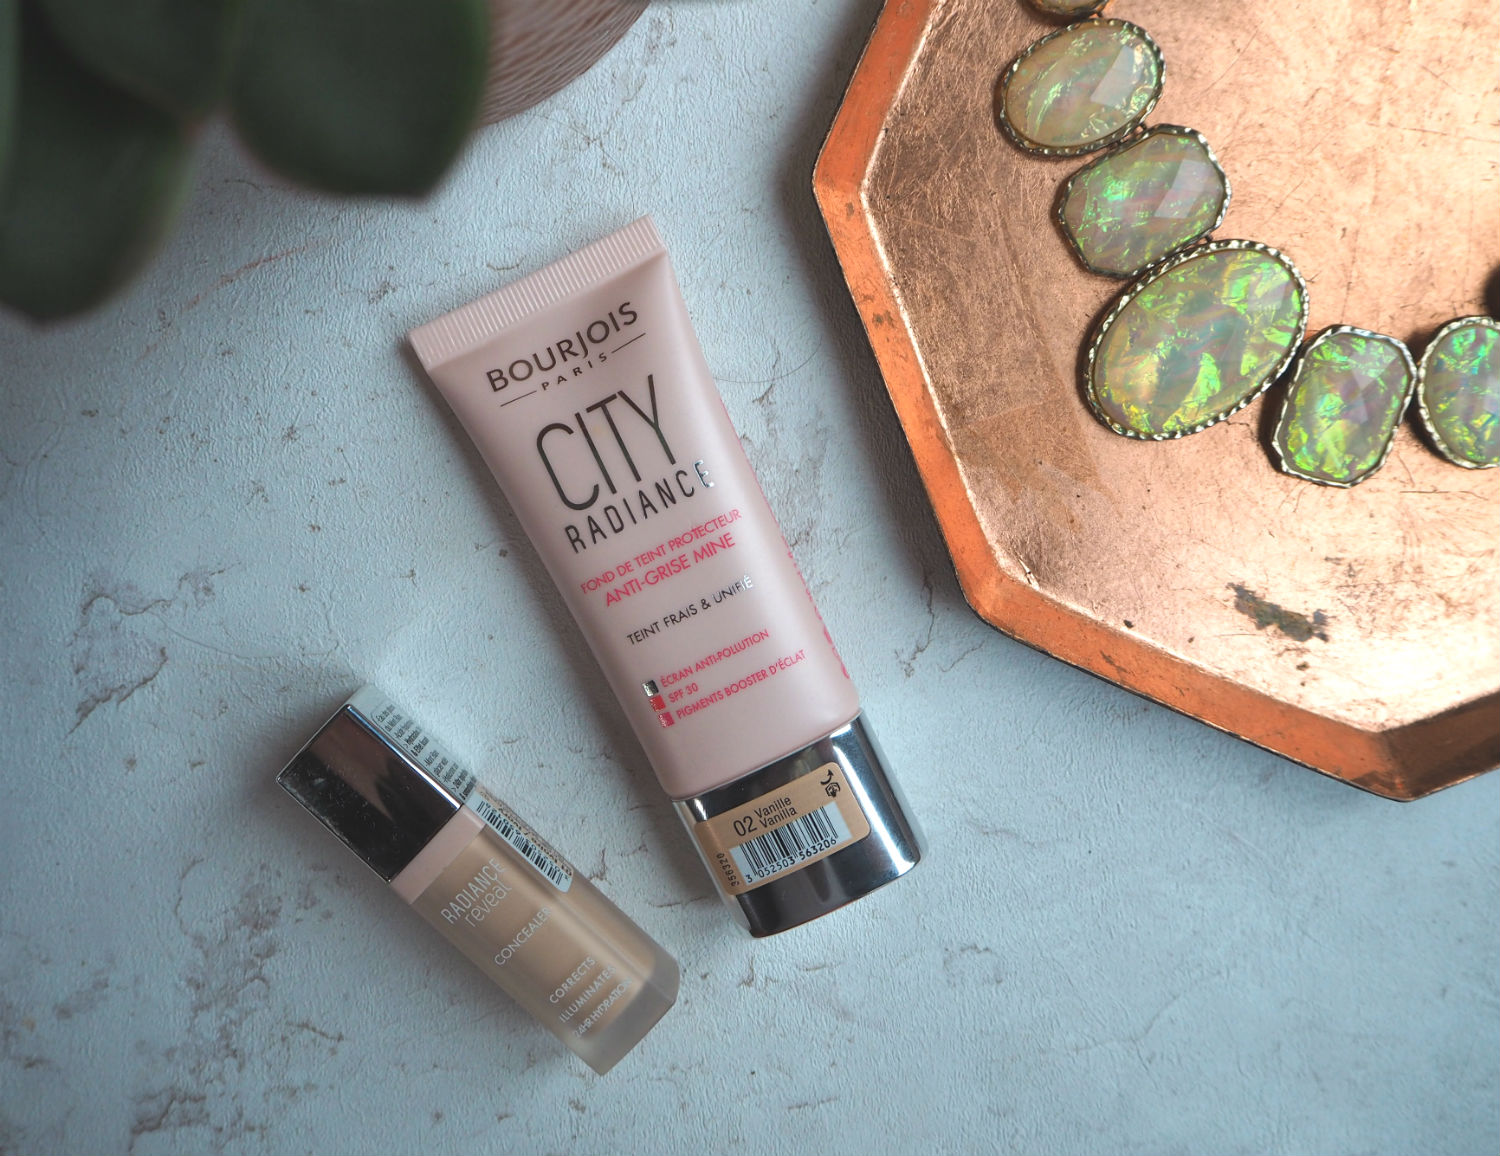 bourjois-city-radiance-foundation-haul